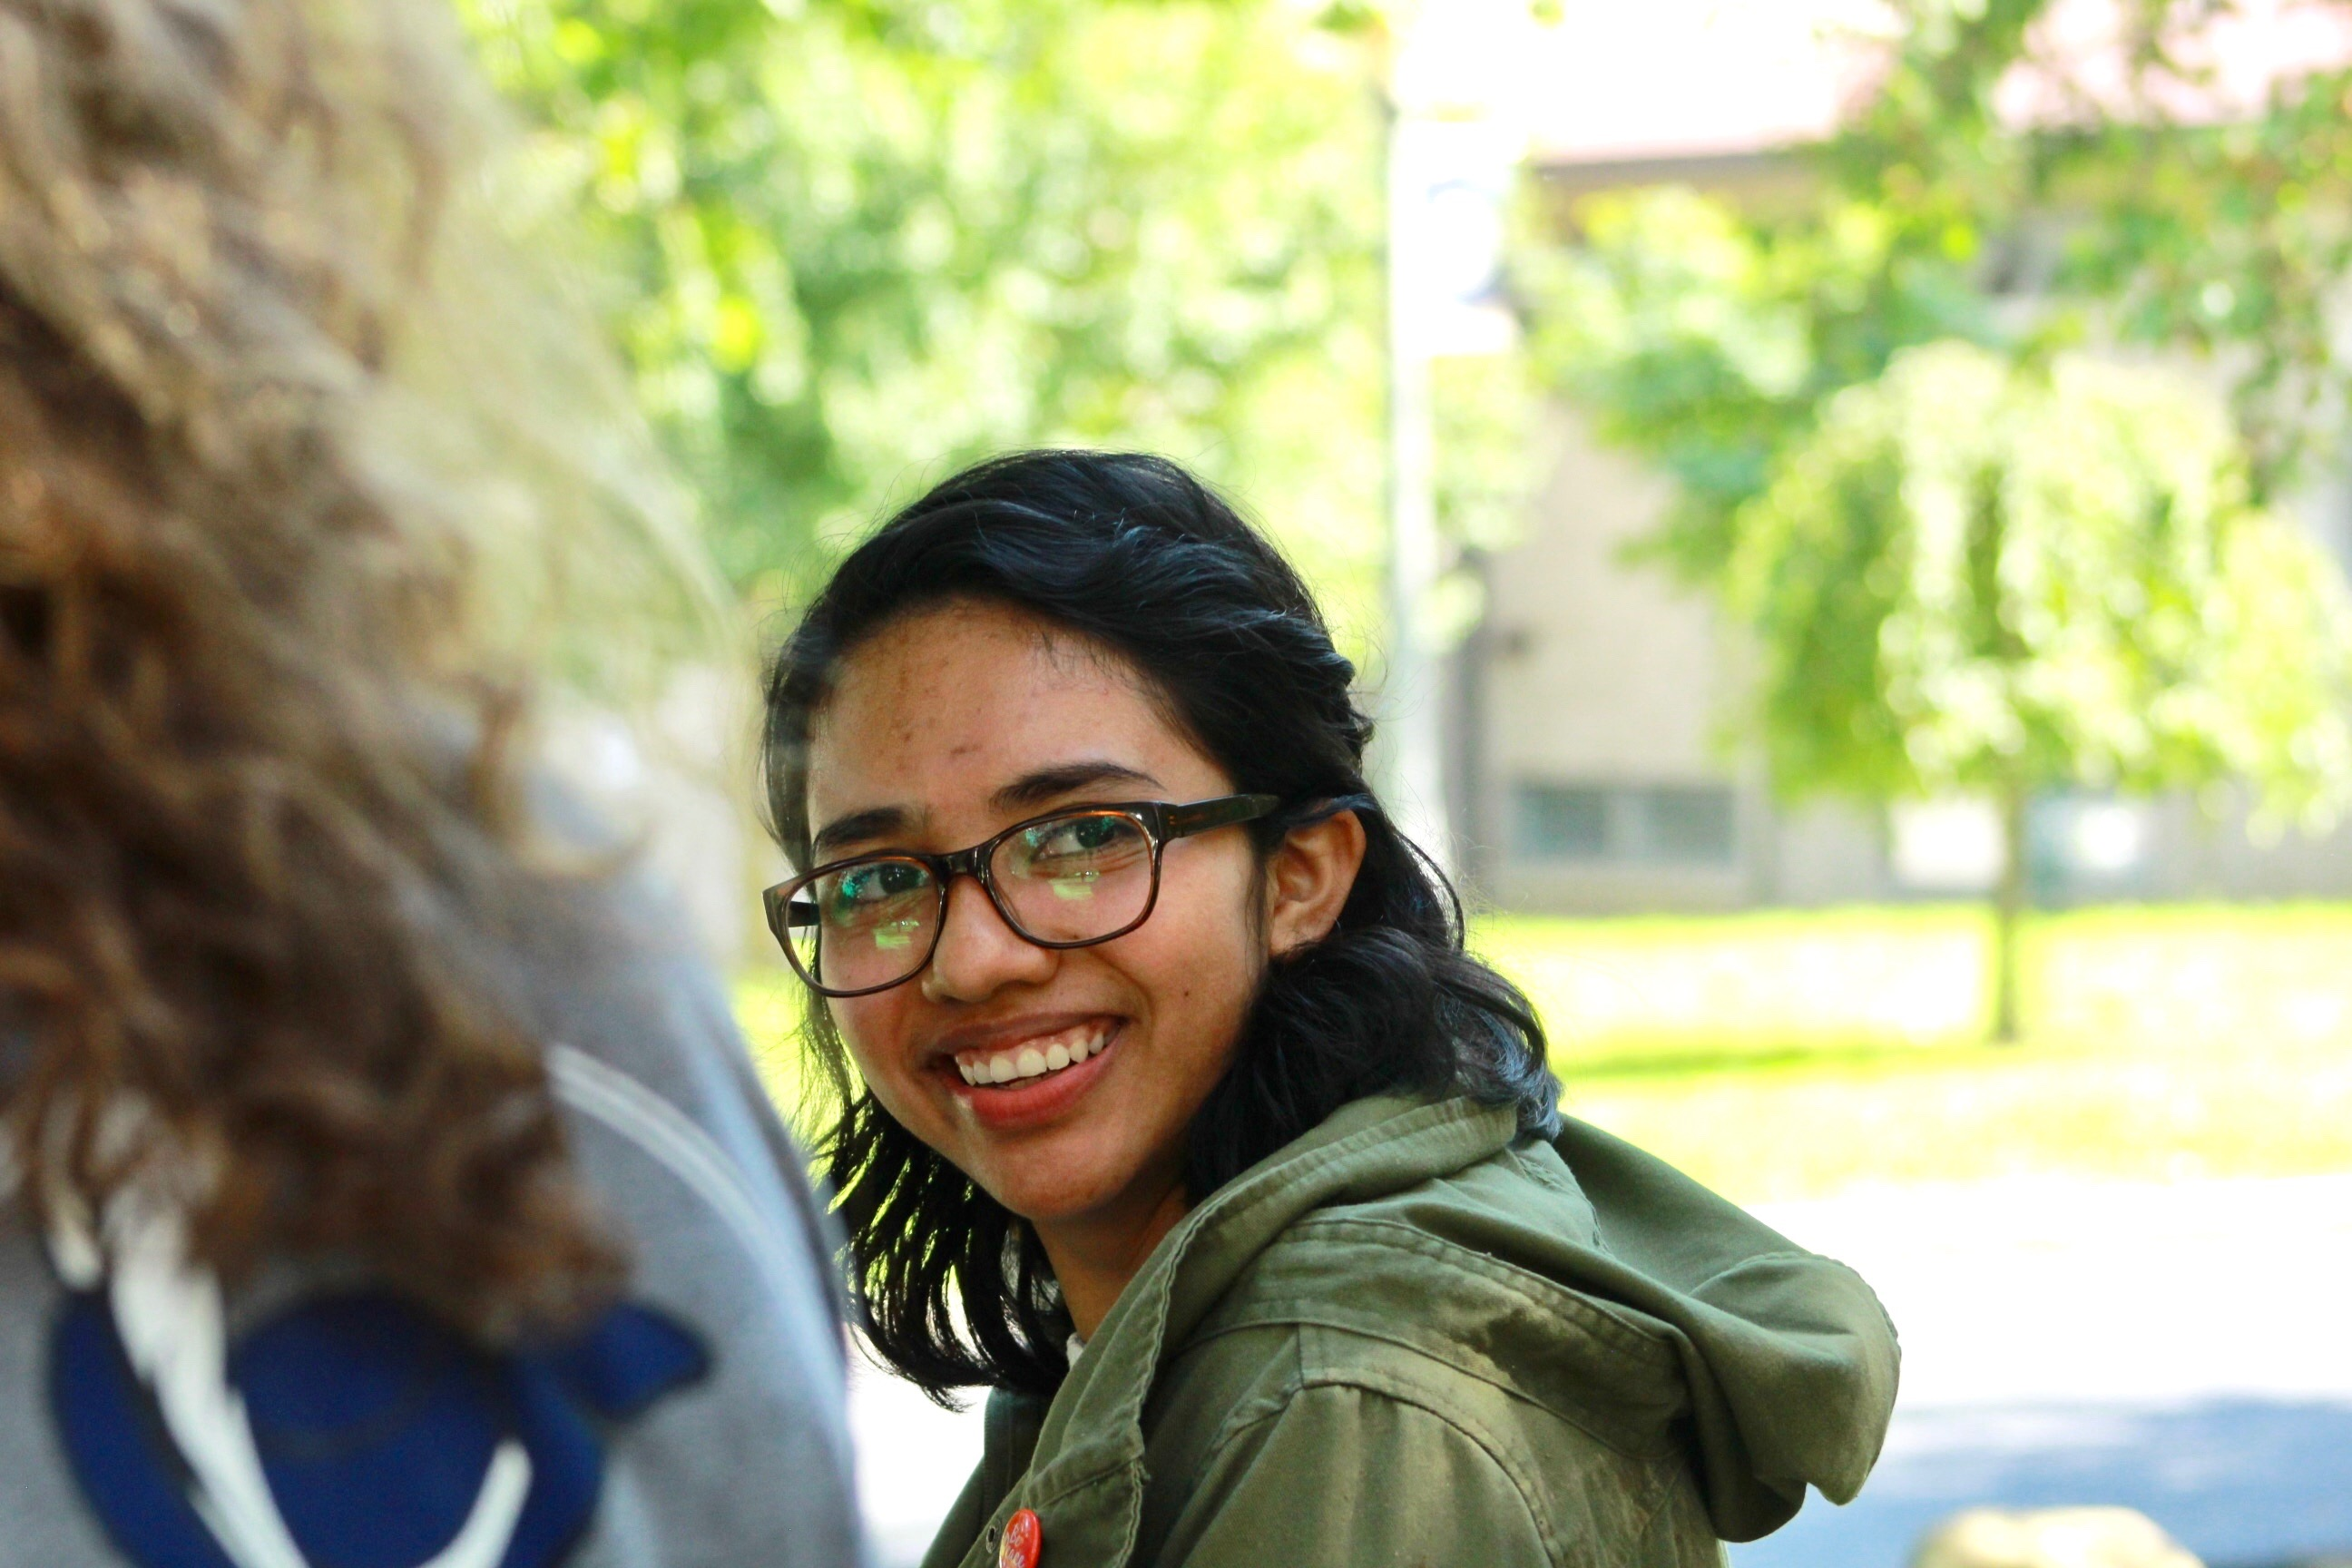 Studying in America post Trump: International students speak out